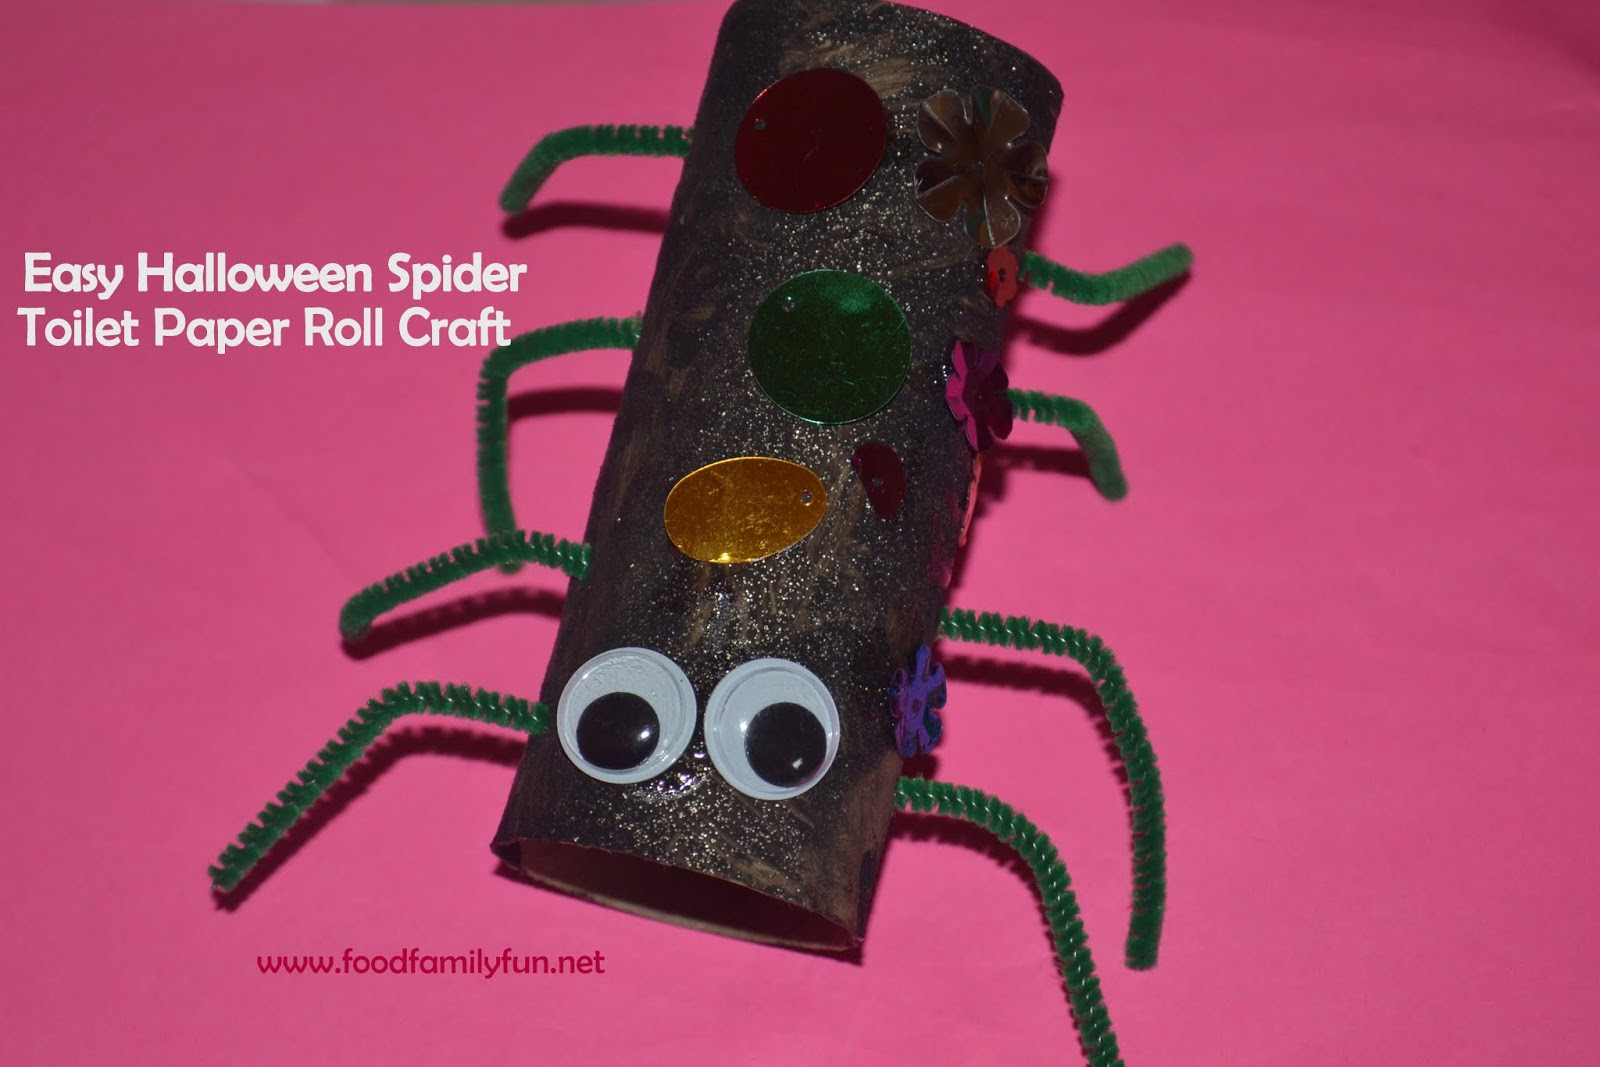 Toilet Paper Roll Halloween Craft  Food Family Fun Halloween Toilet Paper Roll Spider Craft